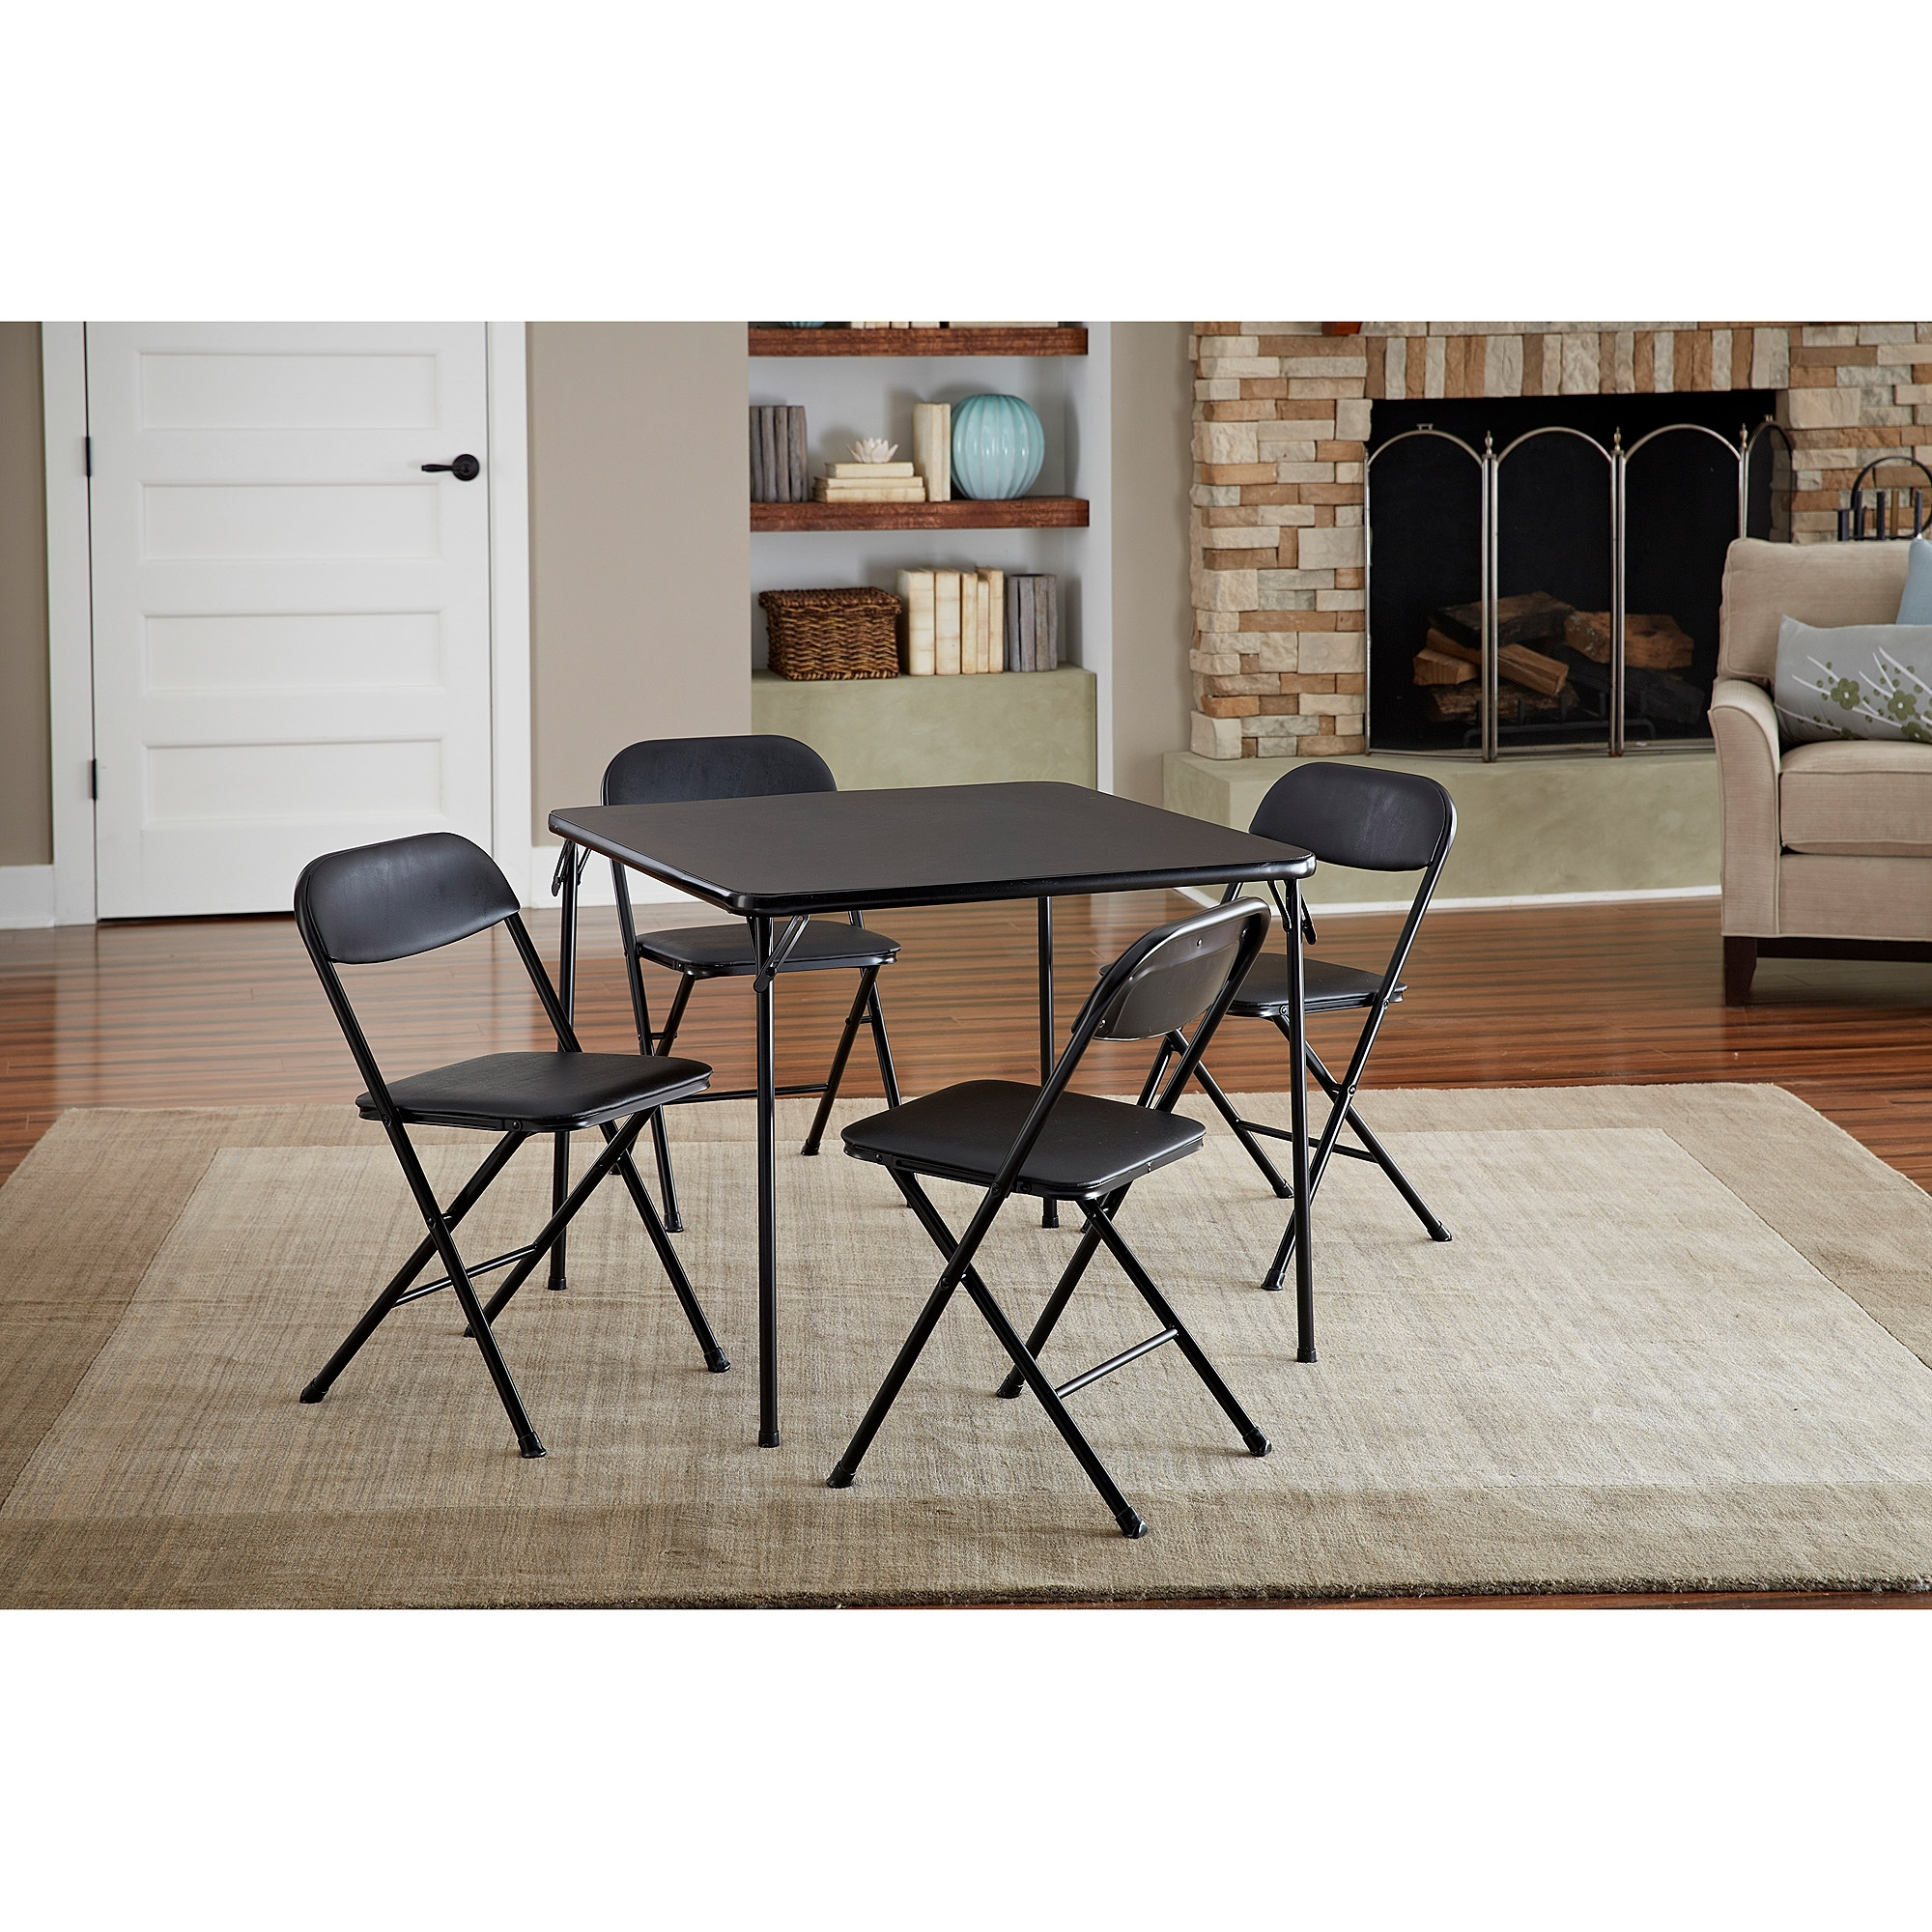 Cosco 5 Piece Card Table Set, Black – Walmart Within Most Recent Dining Tables With Fold Away Chairs (View 21 of 25)